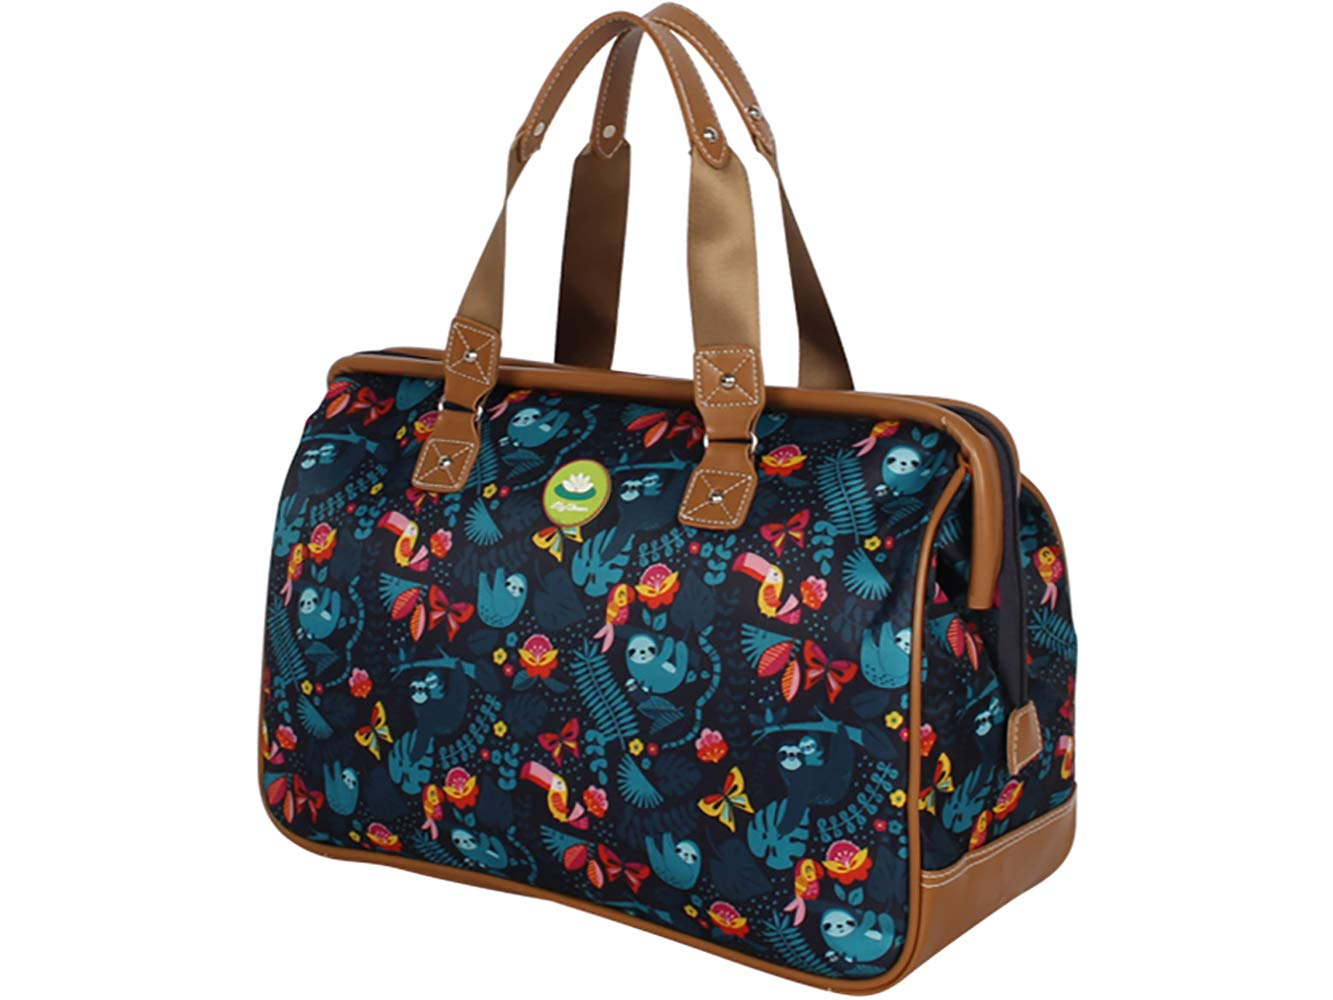 Lily Bloom Satchel (One Size, Sloth To Me Navy)